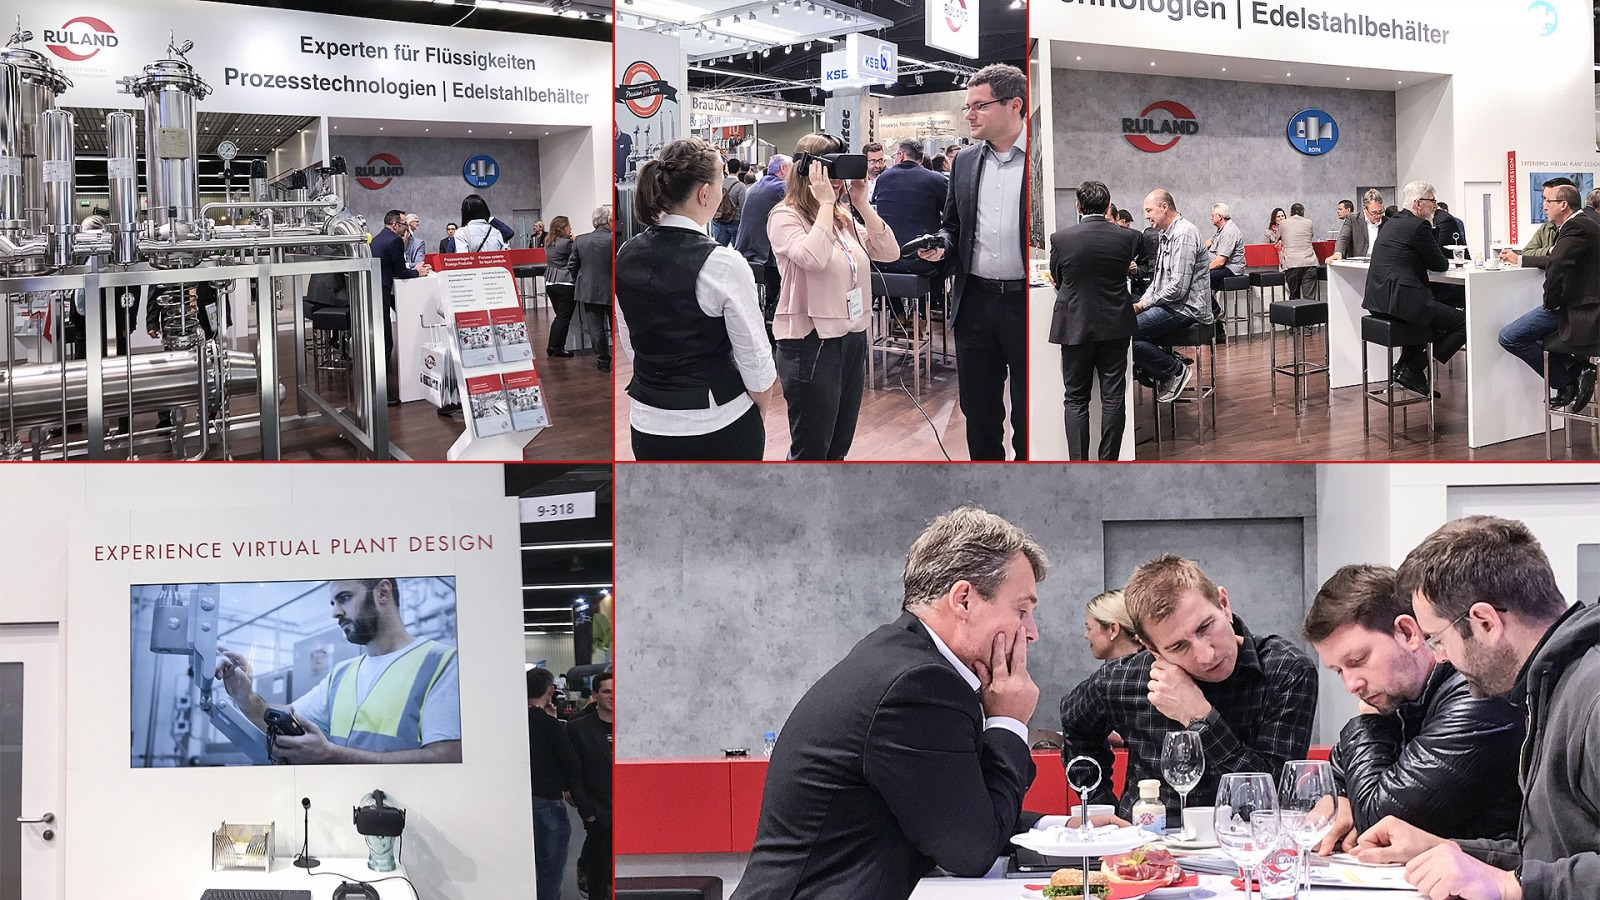 row of photos giving impression of the Ruland booth at BrauBeviale 2018